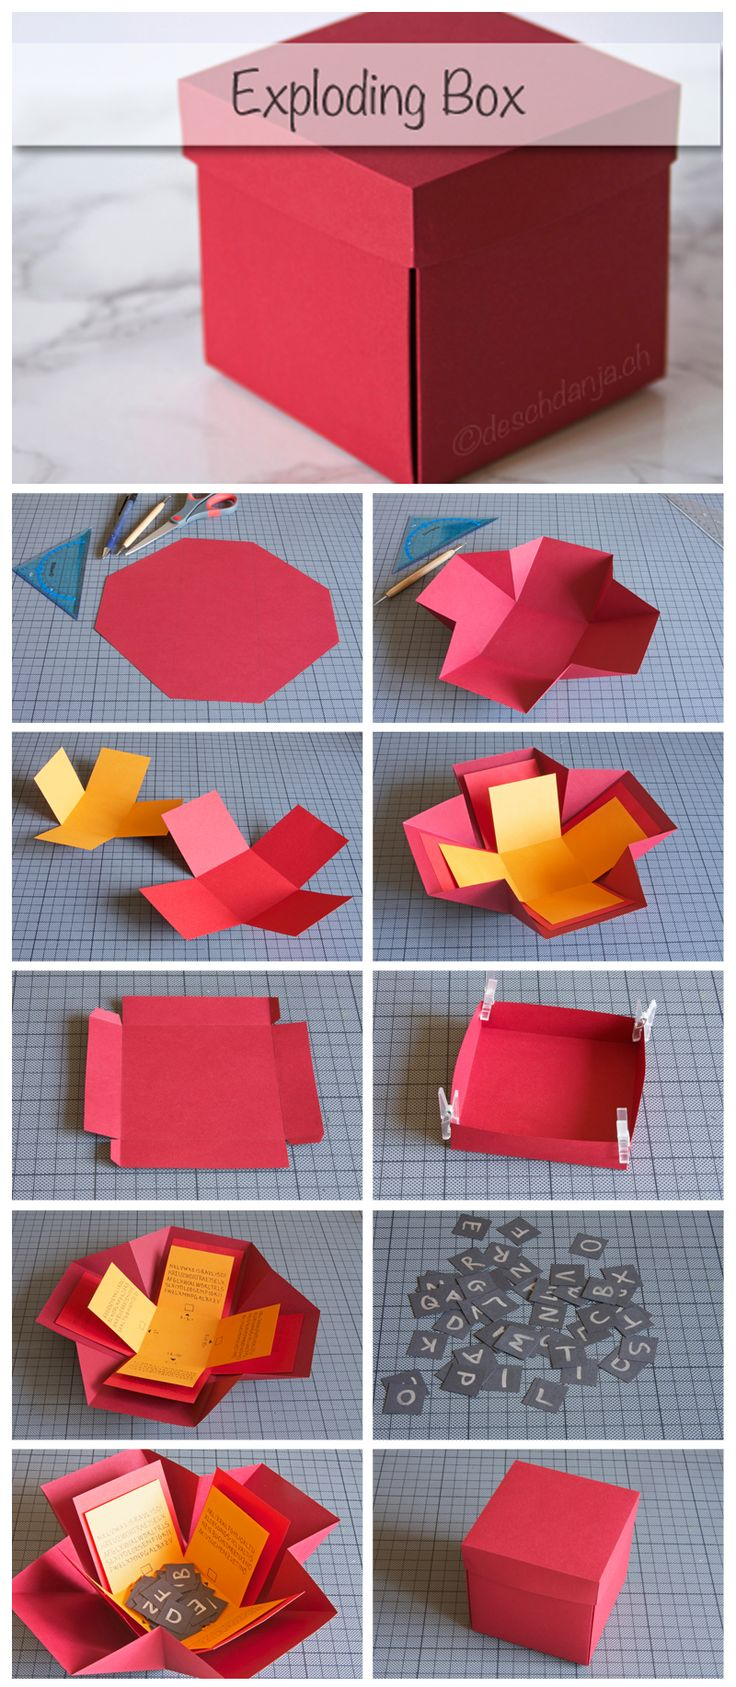 Best 25 Explosion Box Ideas On Pinterest Diy Crafts Exploding